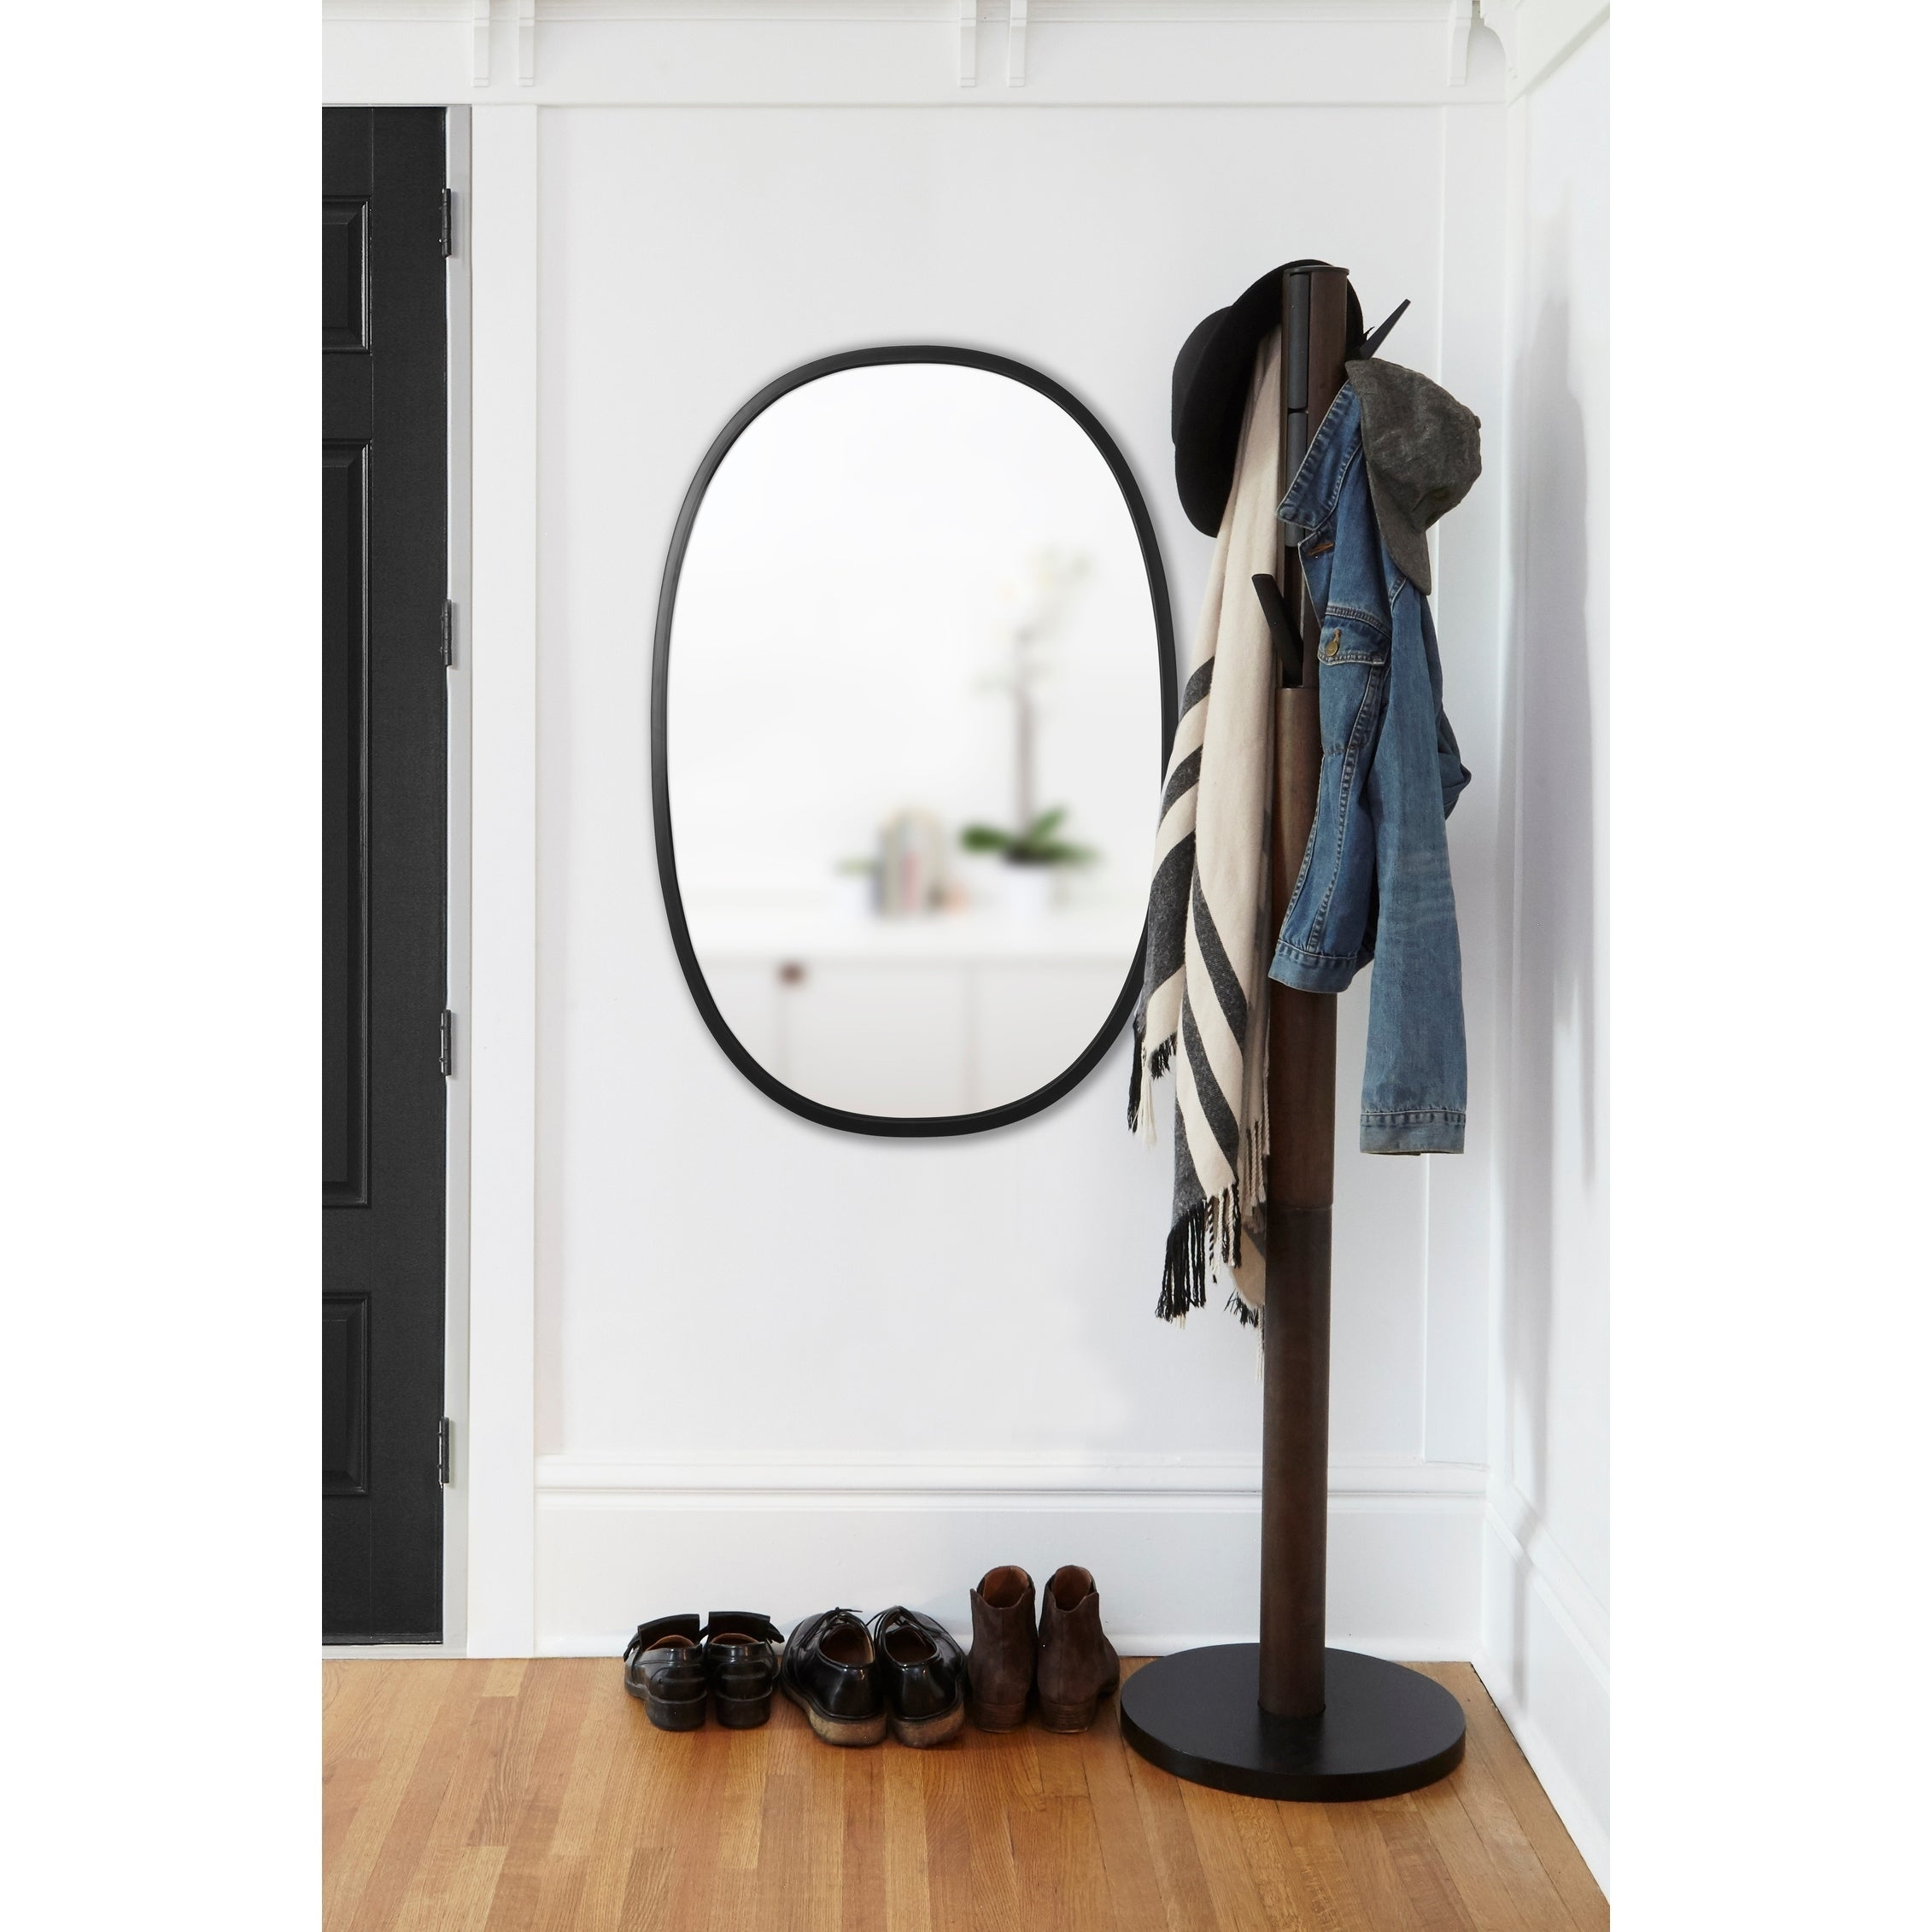 Shop Umbra Hub Mirror Black Oval 24 Inches X 36 Inches   On Sale   Free  Shipping Today   Overstock.com   19886829